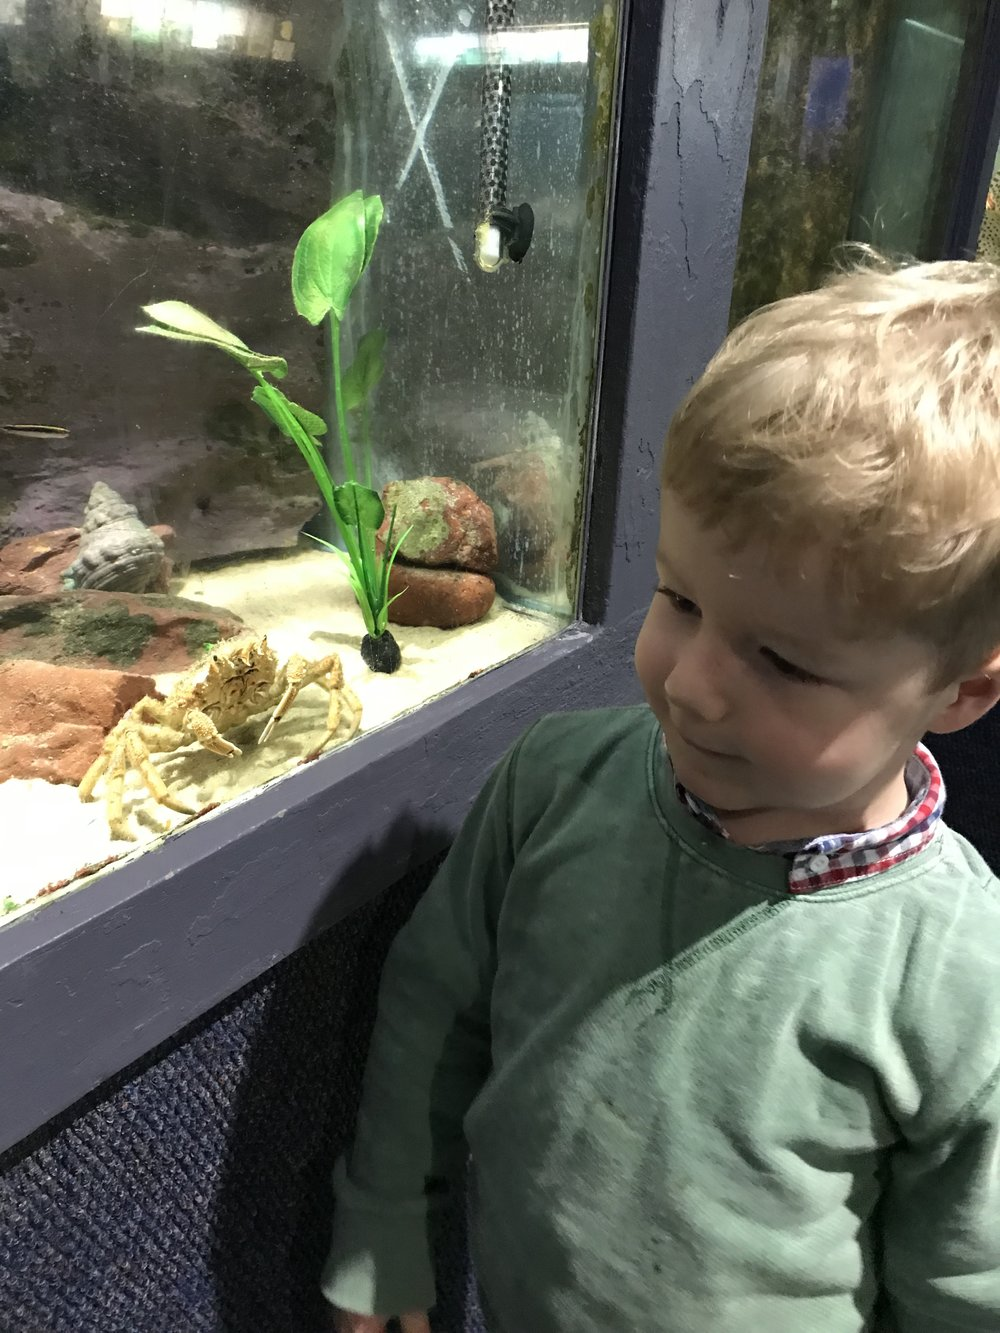 One of my own sons at an aquarium